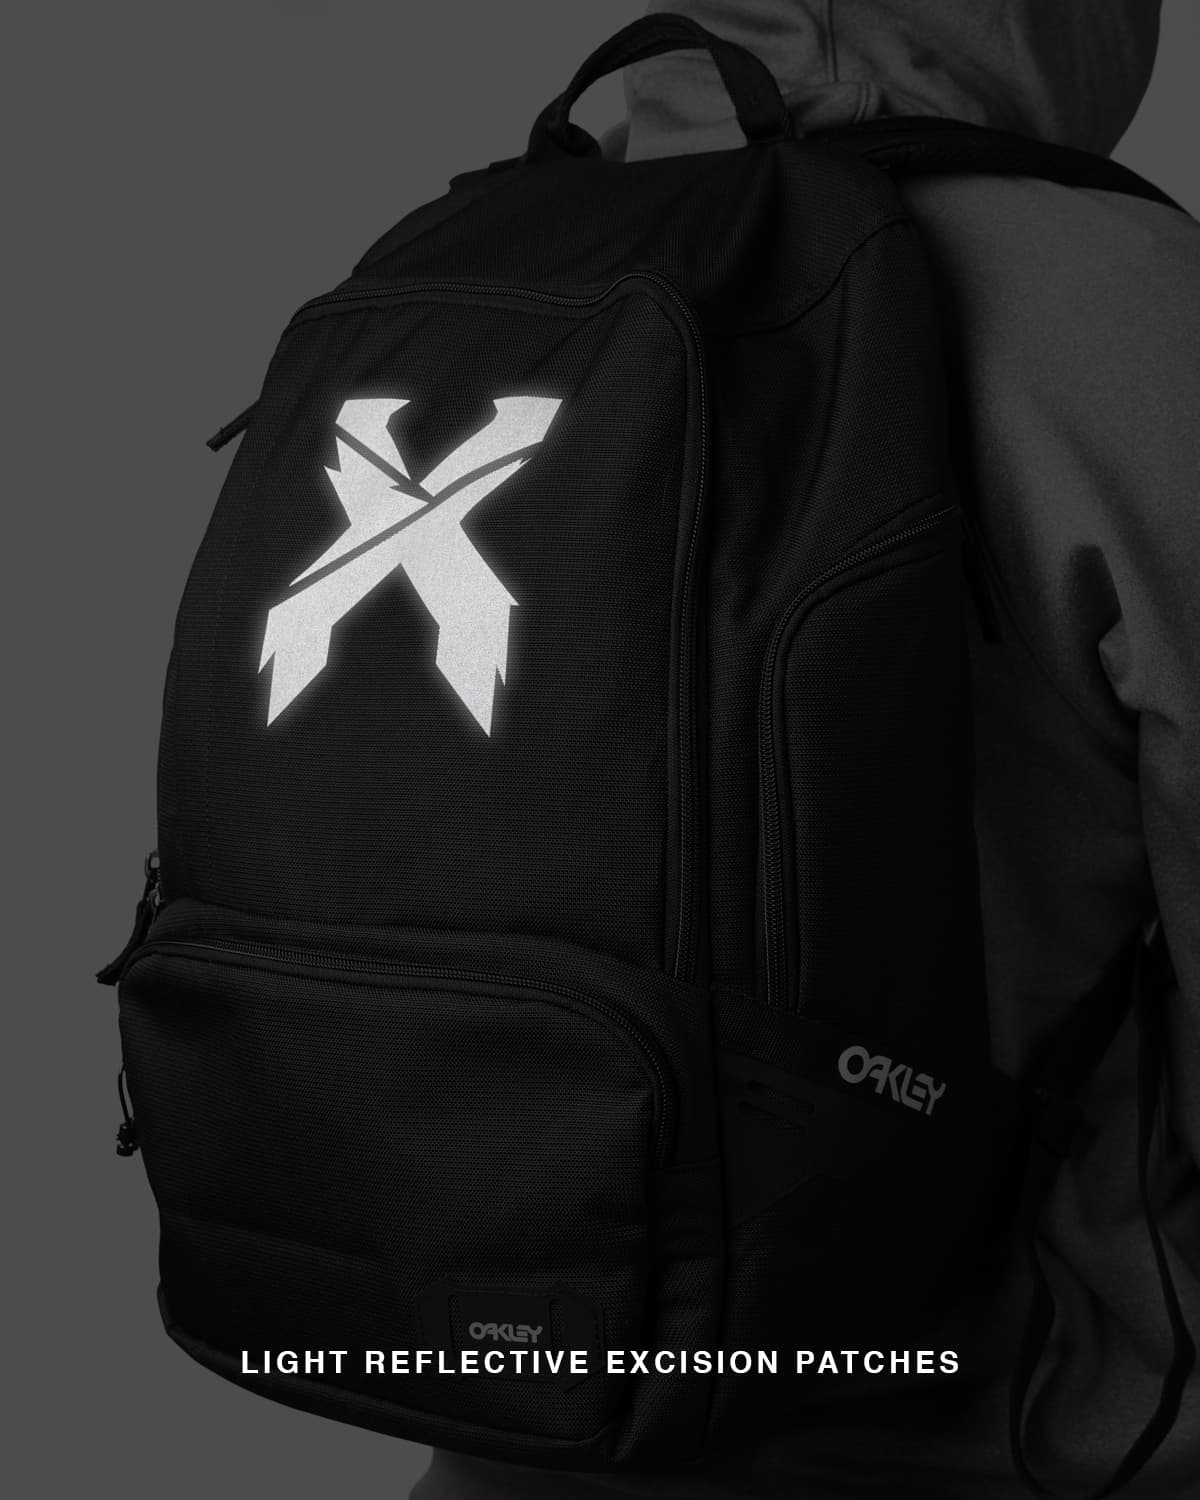 Excision x Oakley 'Sliced' Reflective Backpack